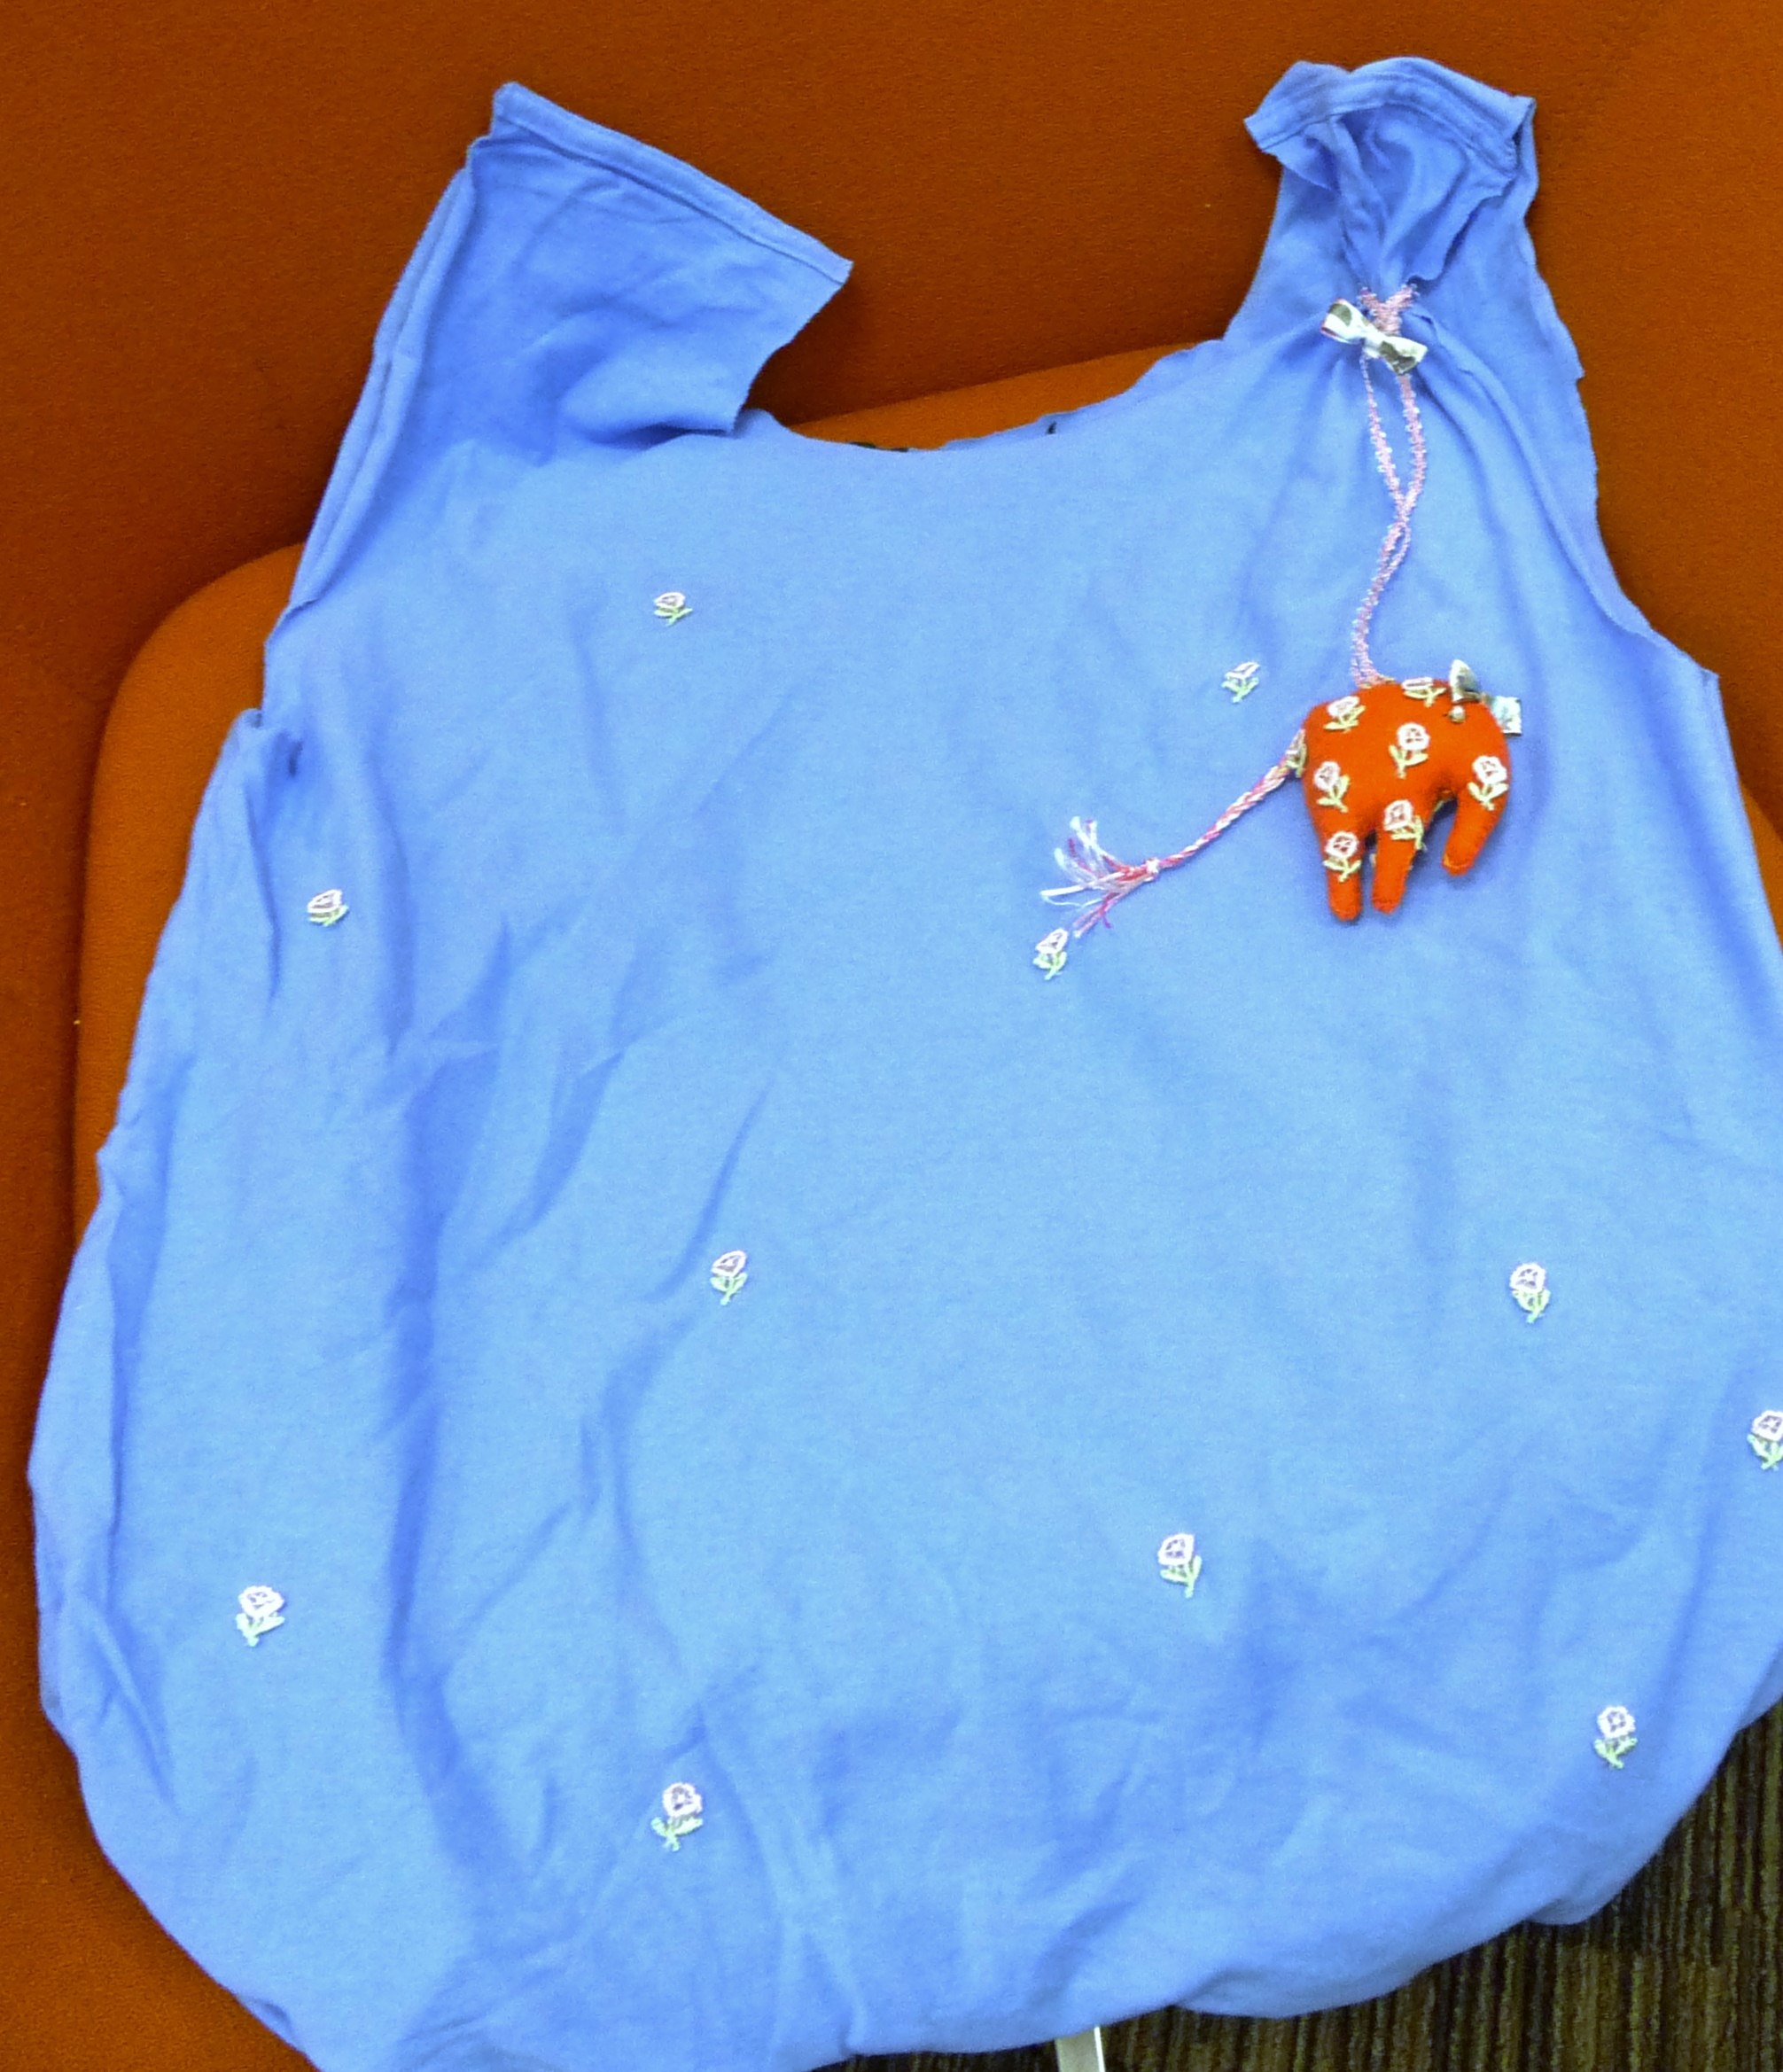 one person made a carry bag from a teeshirt and added an embroidered elephant made at the MEG workshop at MAKEFEST in Liverpool Central Library, June 2015